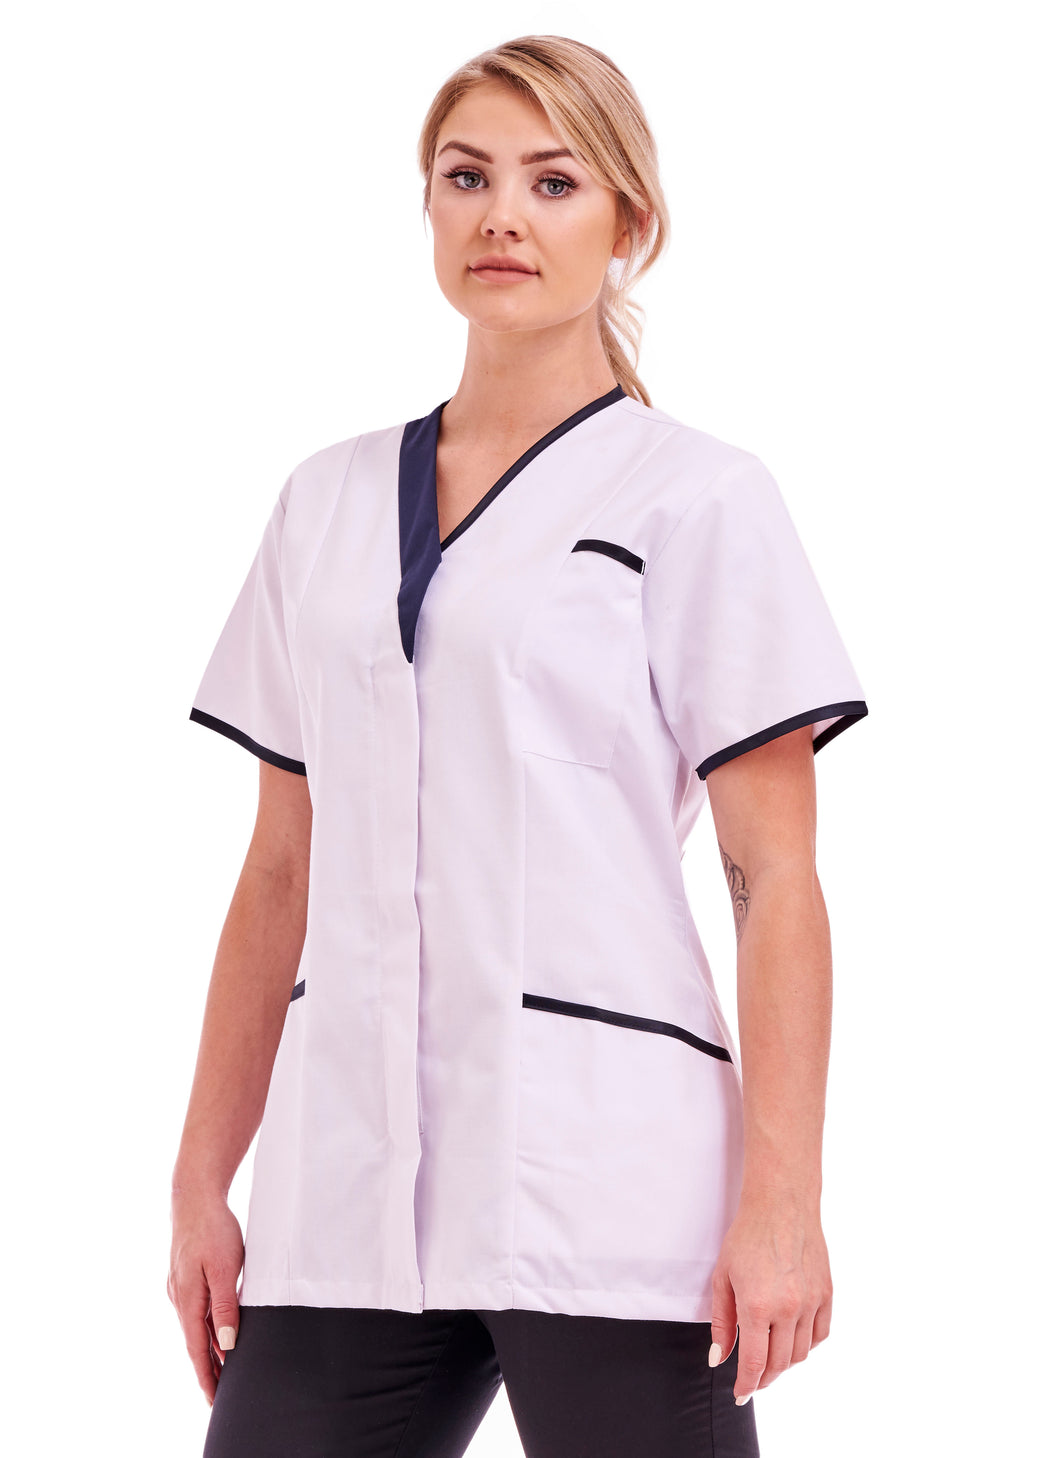 White tunic with navy contrast and assymetric V neck for women